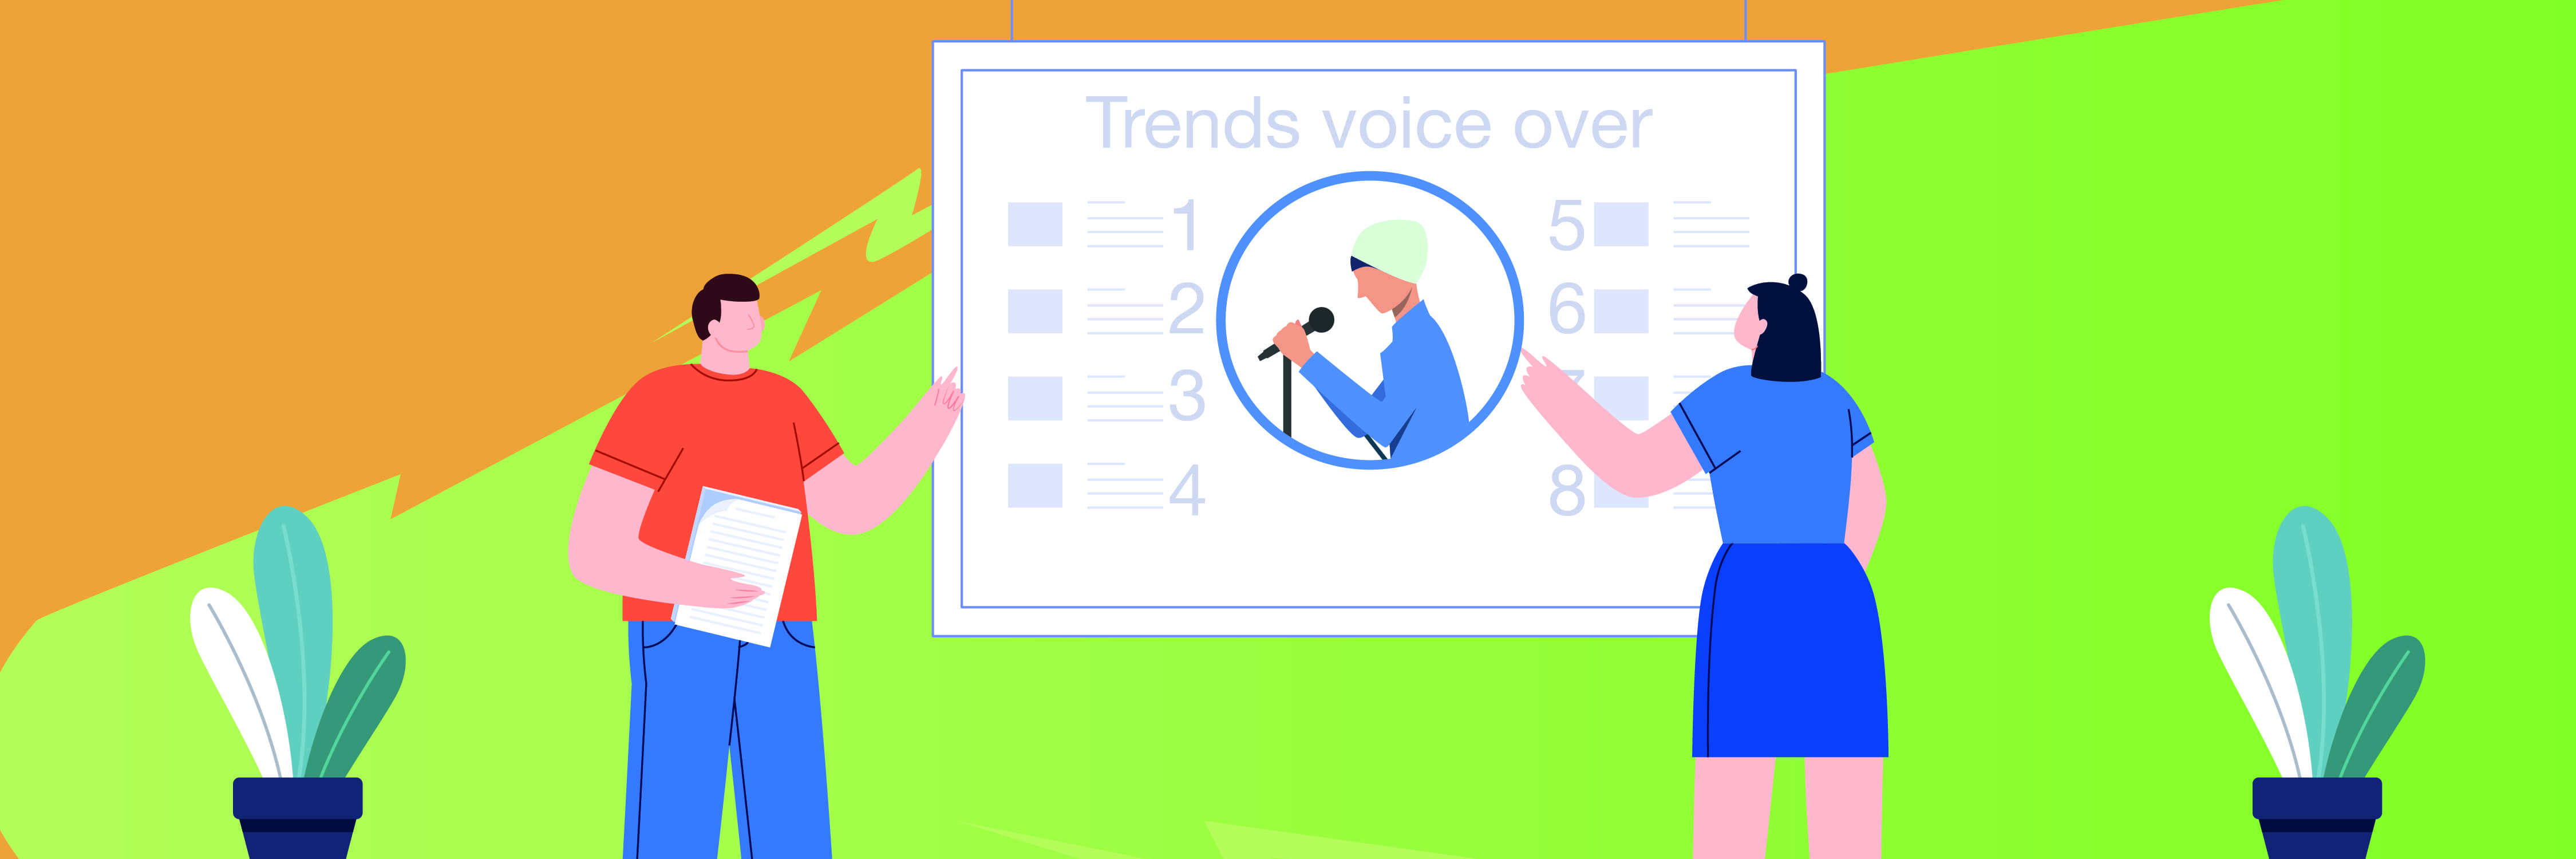 trends-voice-over-voice-actors-seeing-trends-on-graph